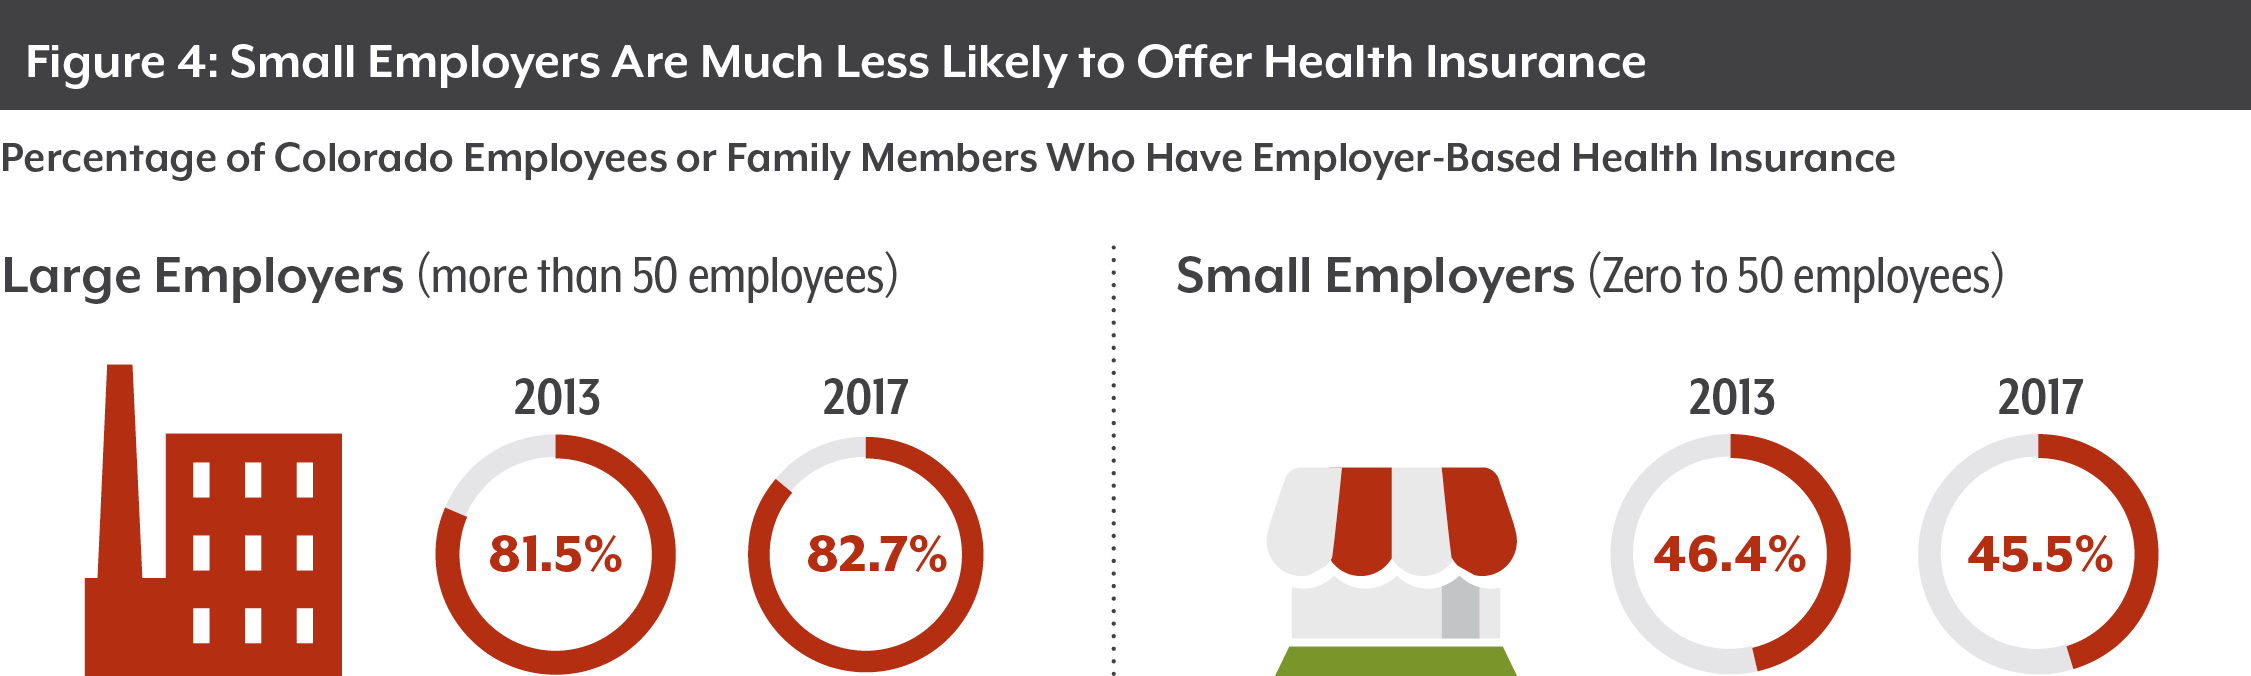 Colorado Health Insurance >> Health Insurance Is Less Tied To Jobs Than Ever In Colorado